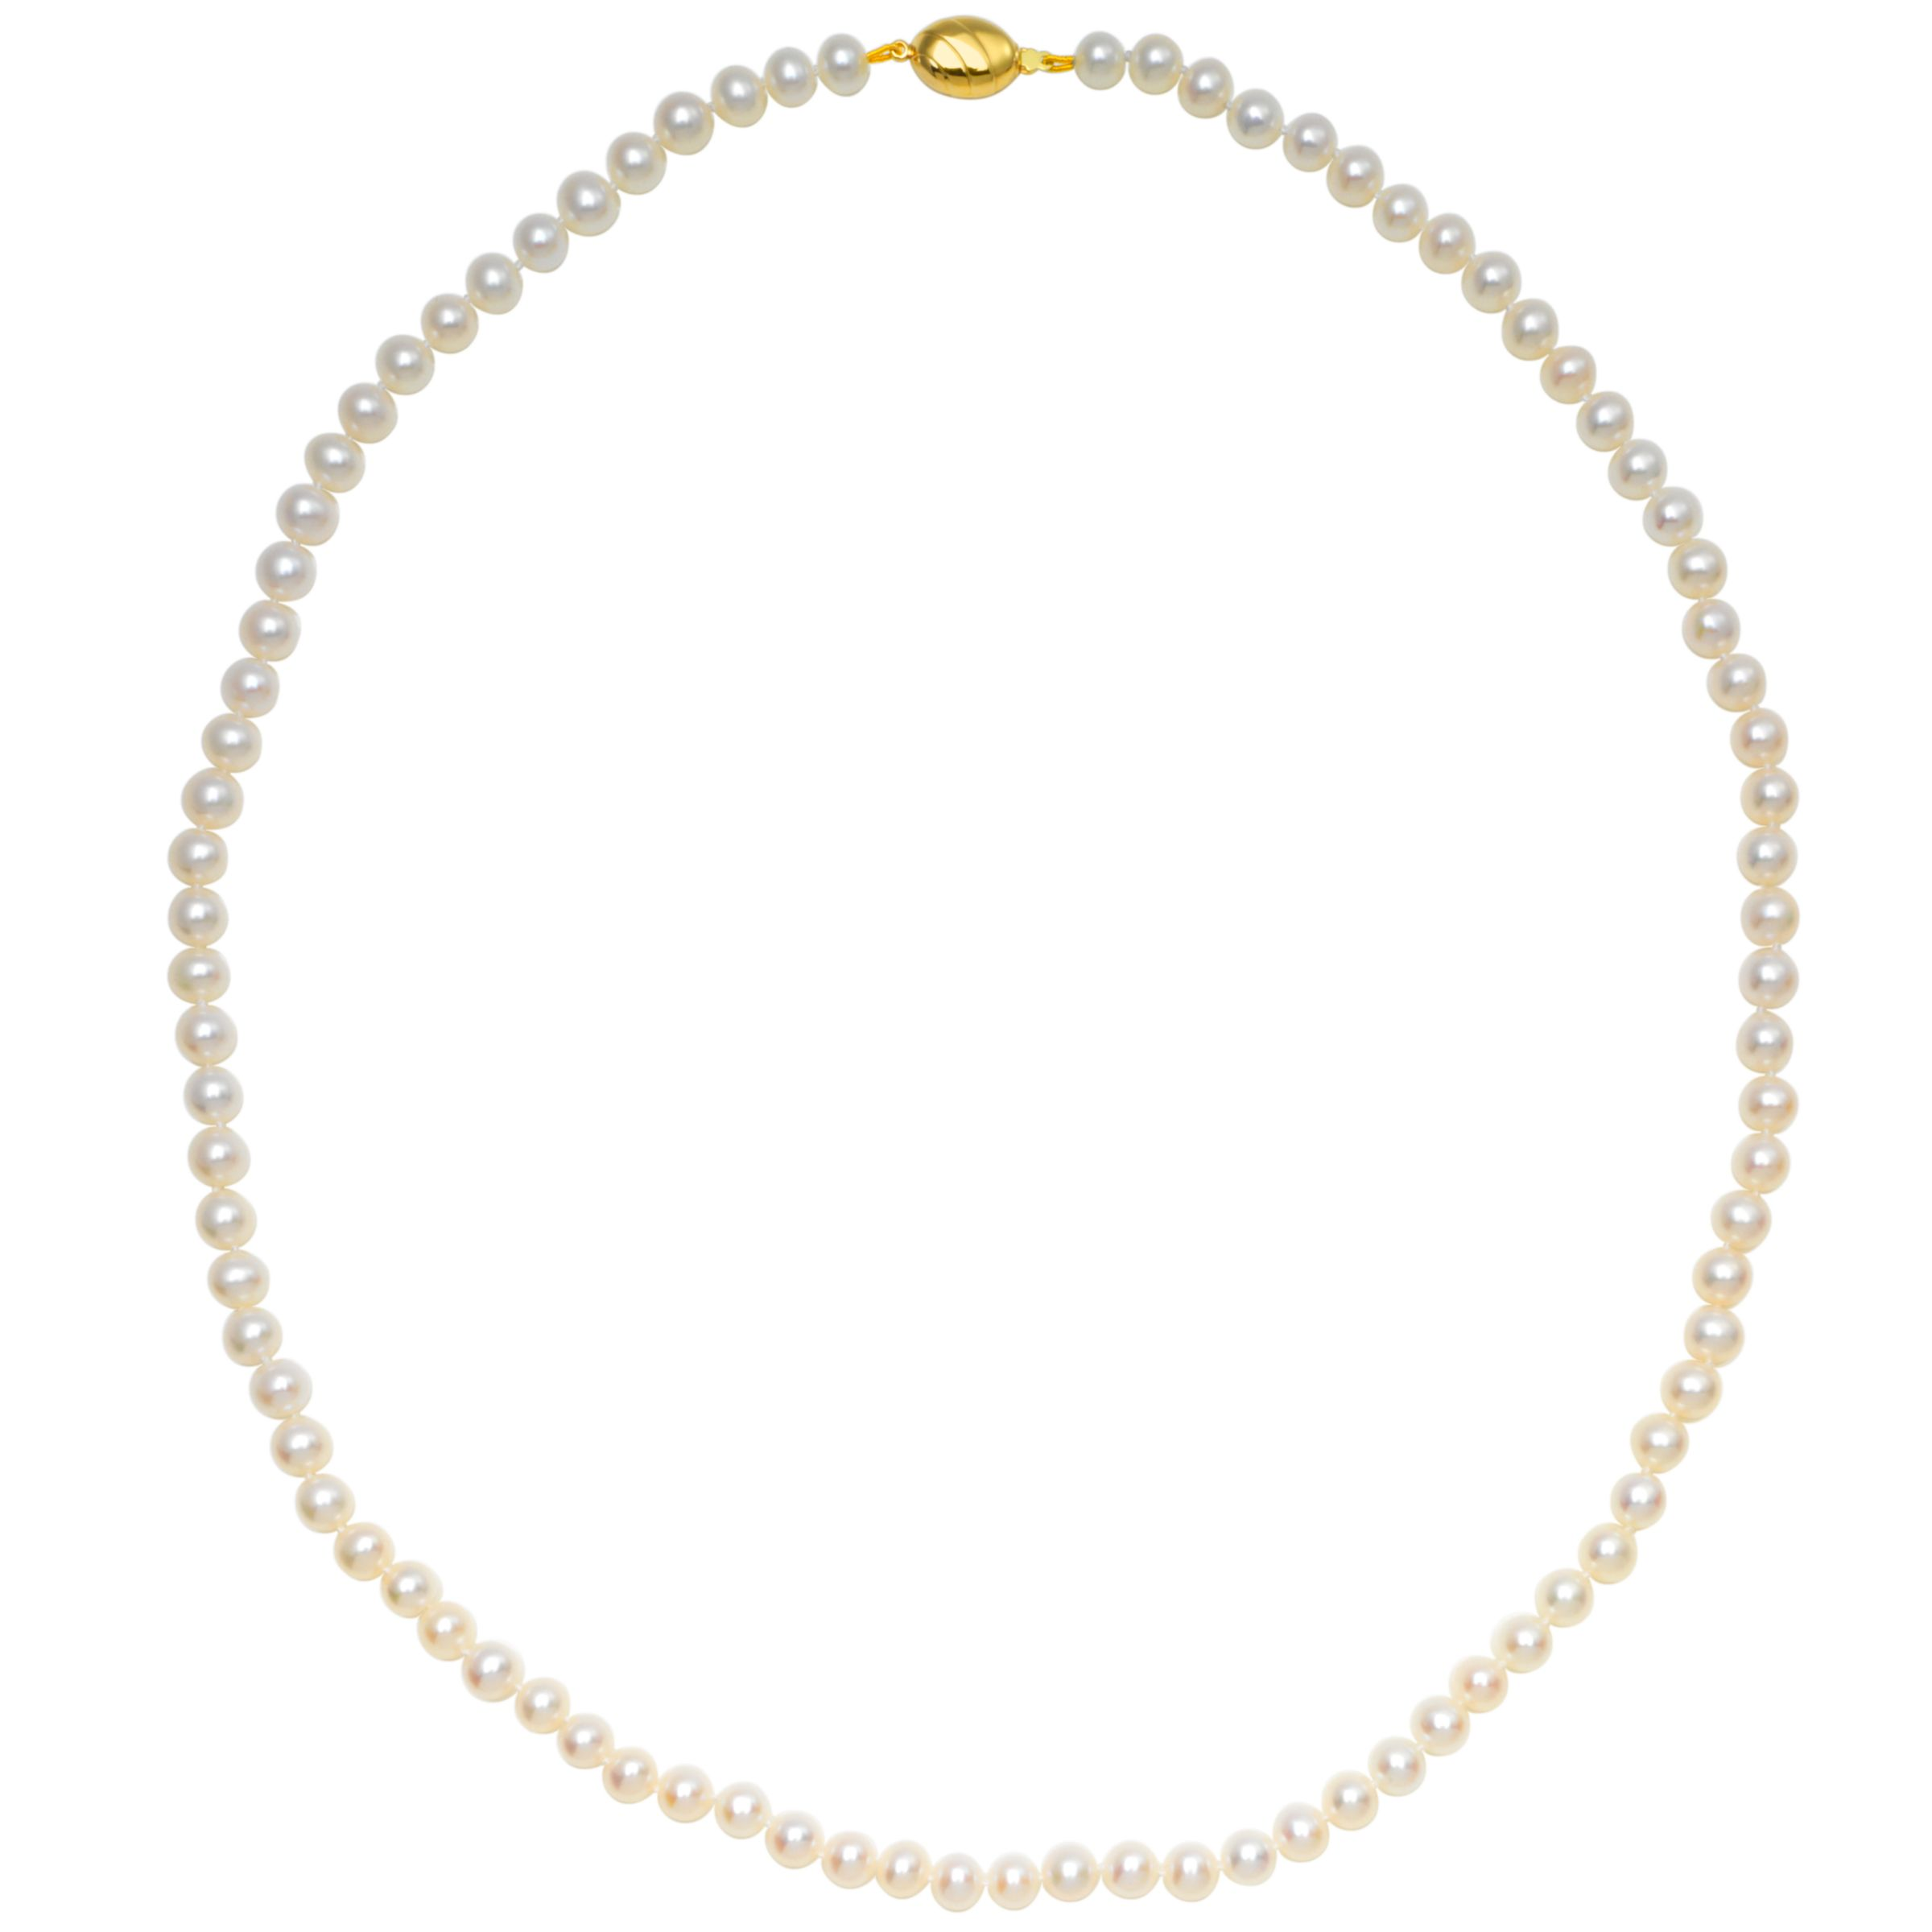 Freshwater Lustre Pearls Knotted 26